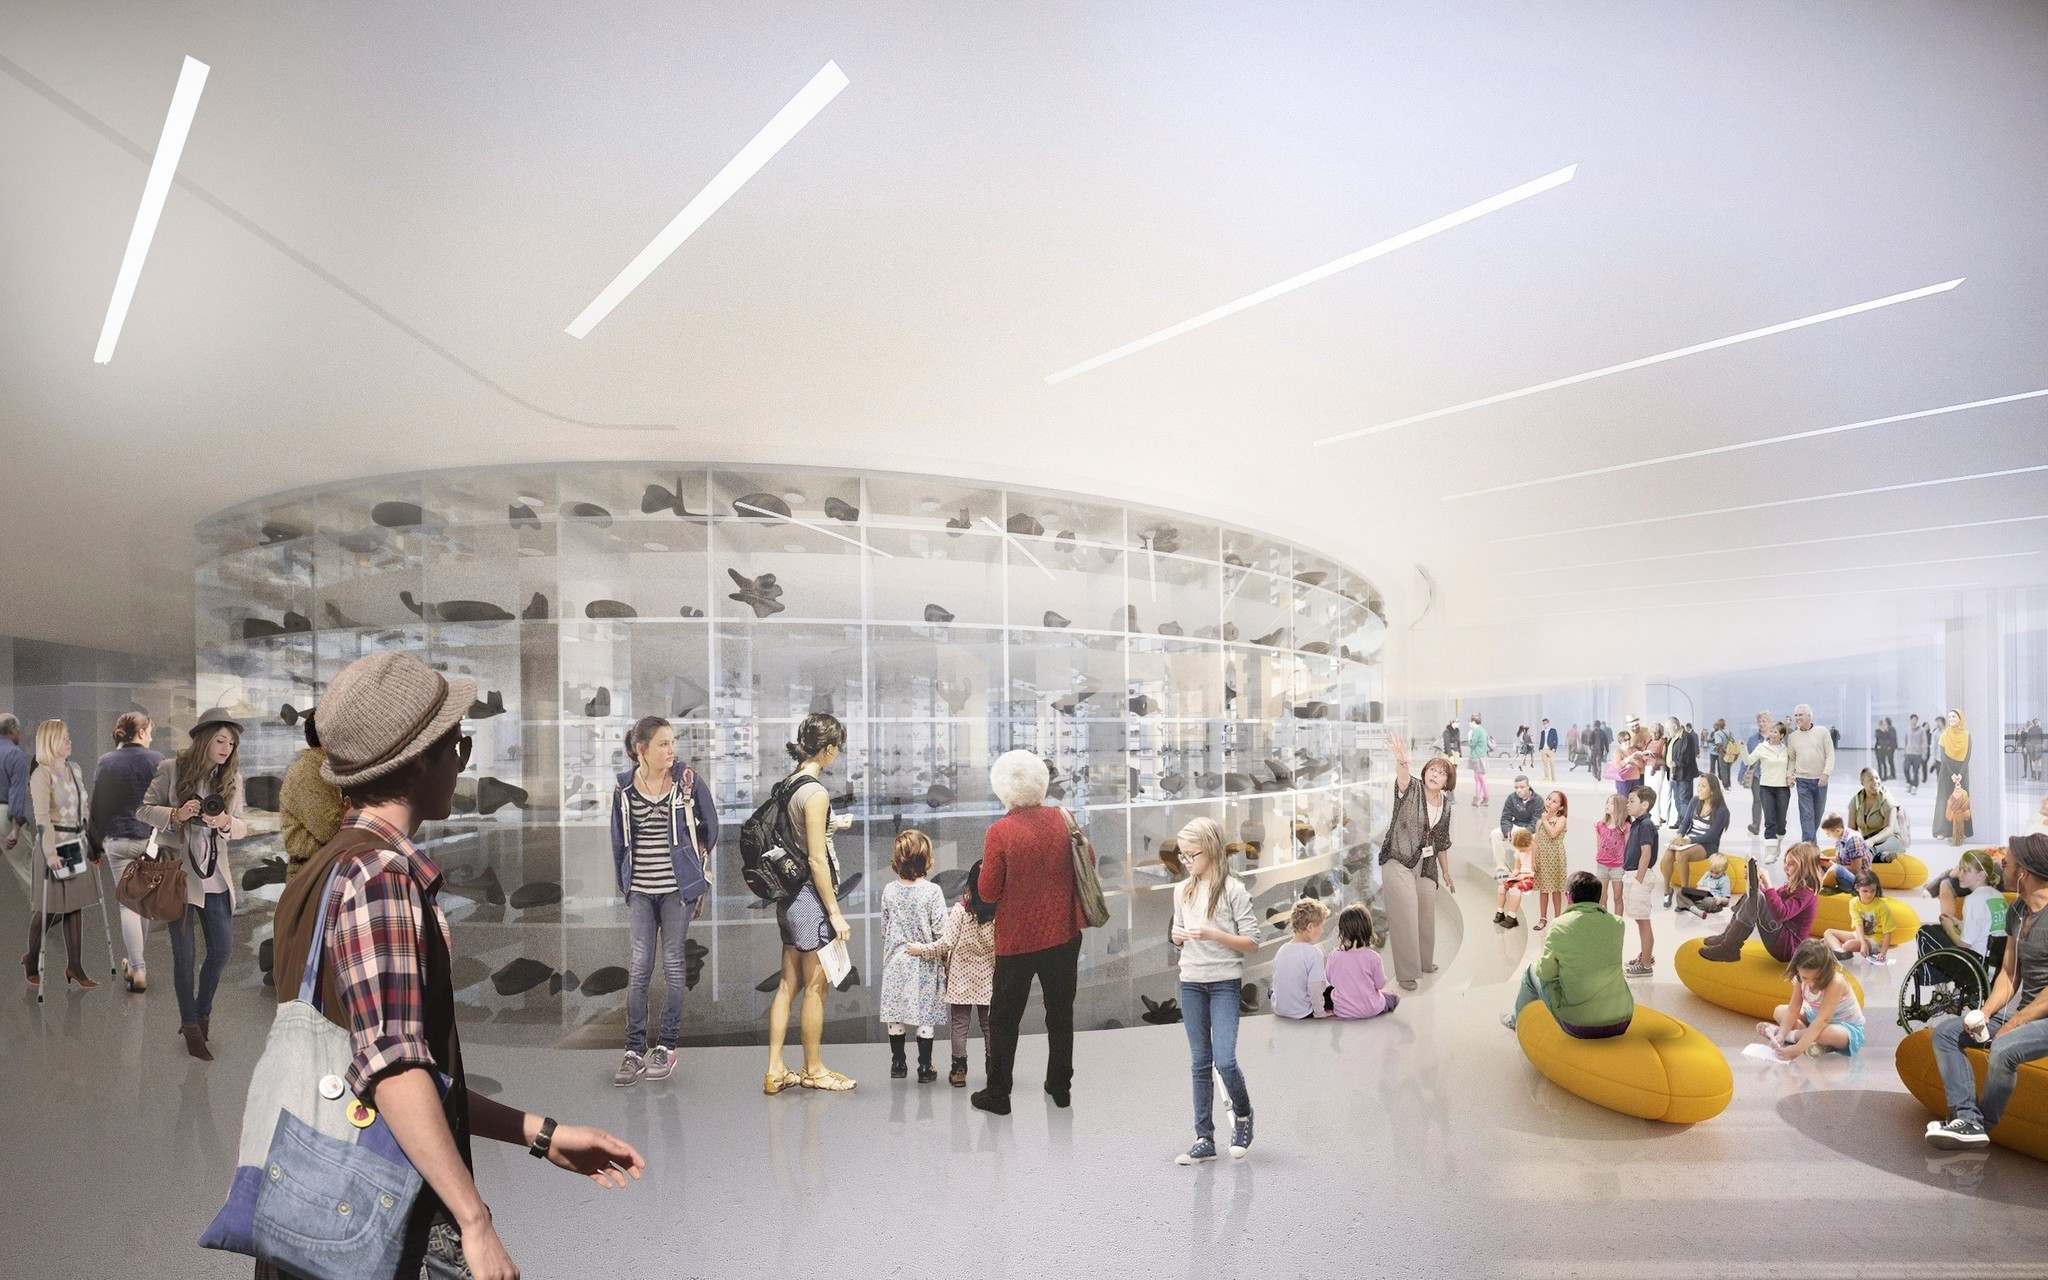 HANDOUT / THE CANADIAN PRESS FILES</p><p>An artist's rendition of a planned Inuit Art Centre in Winnipeg is shown in a handout photo. Winnipeg's art gallery is trying to carve out space to house what's believed to be the world's largest collection of Inuit art - only a fraction of which is ever on display. </p>